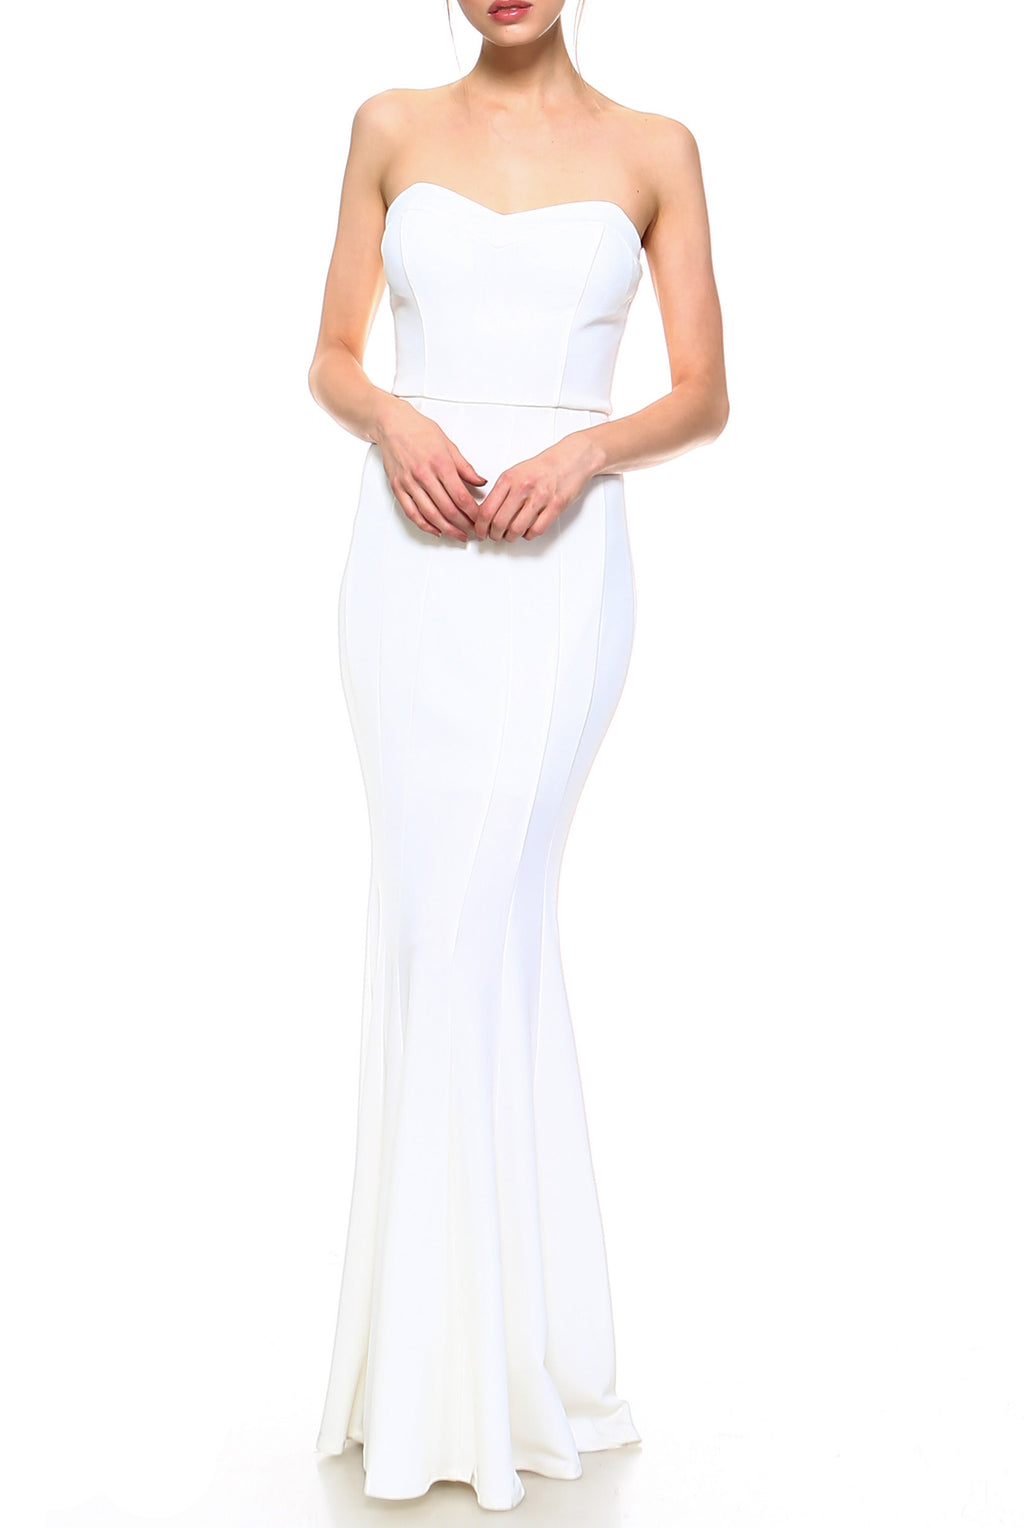 Teeze Me | Strapless Tube Top Trumpet Skirt Long Dress  | Ivory